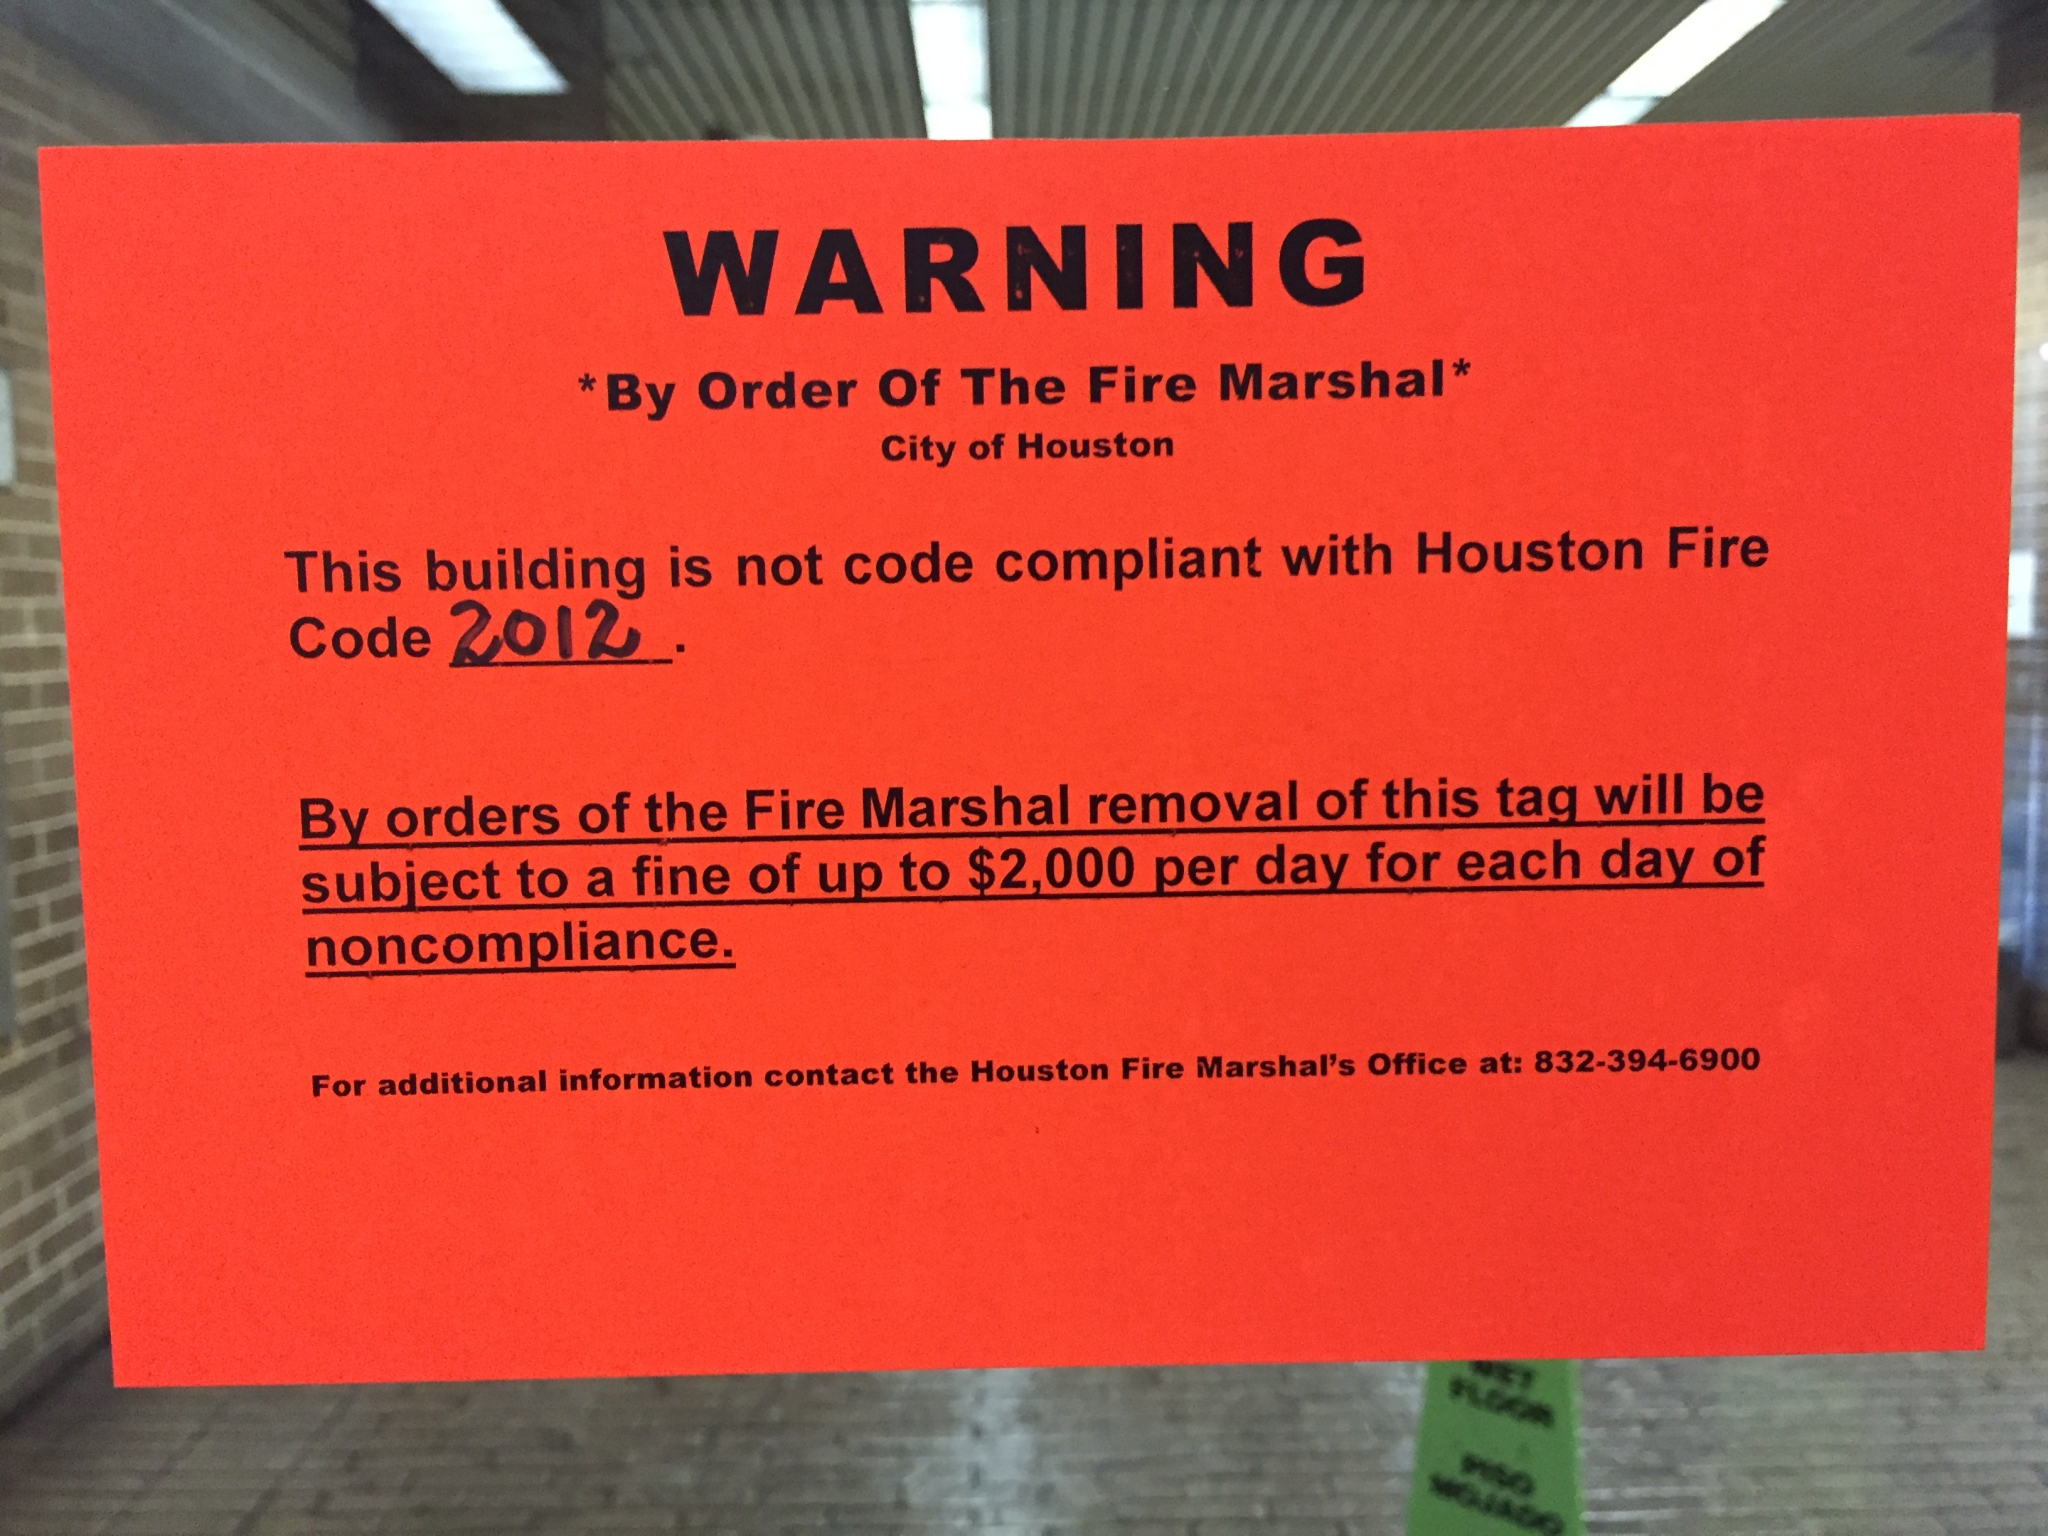 Another Harris County Building Flagged For Fire Code Violations